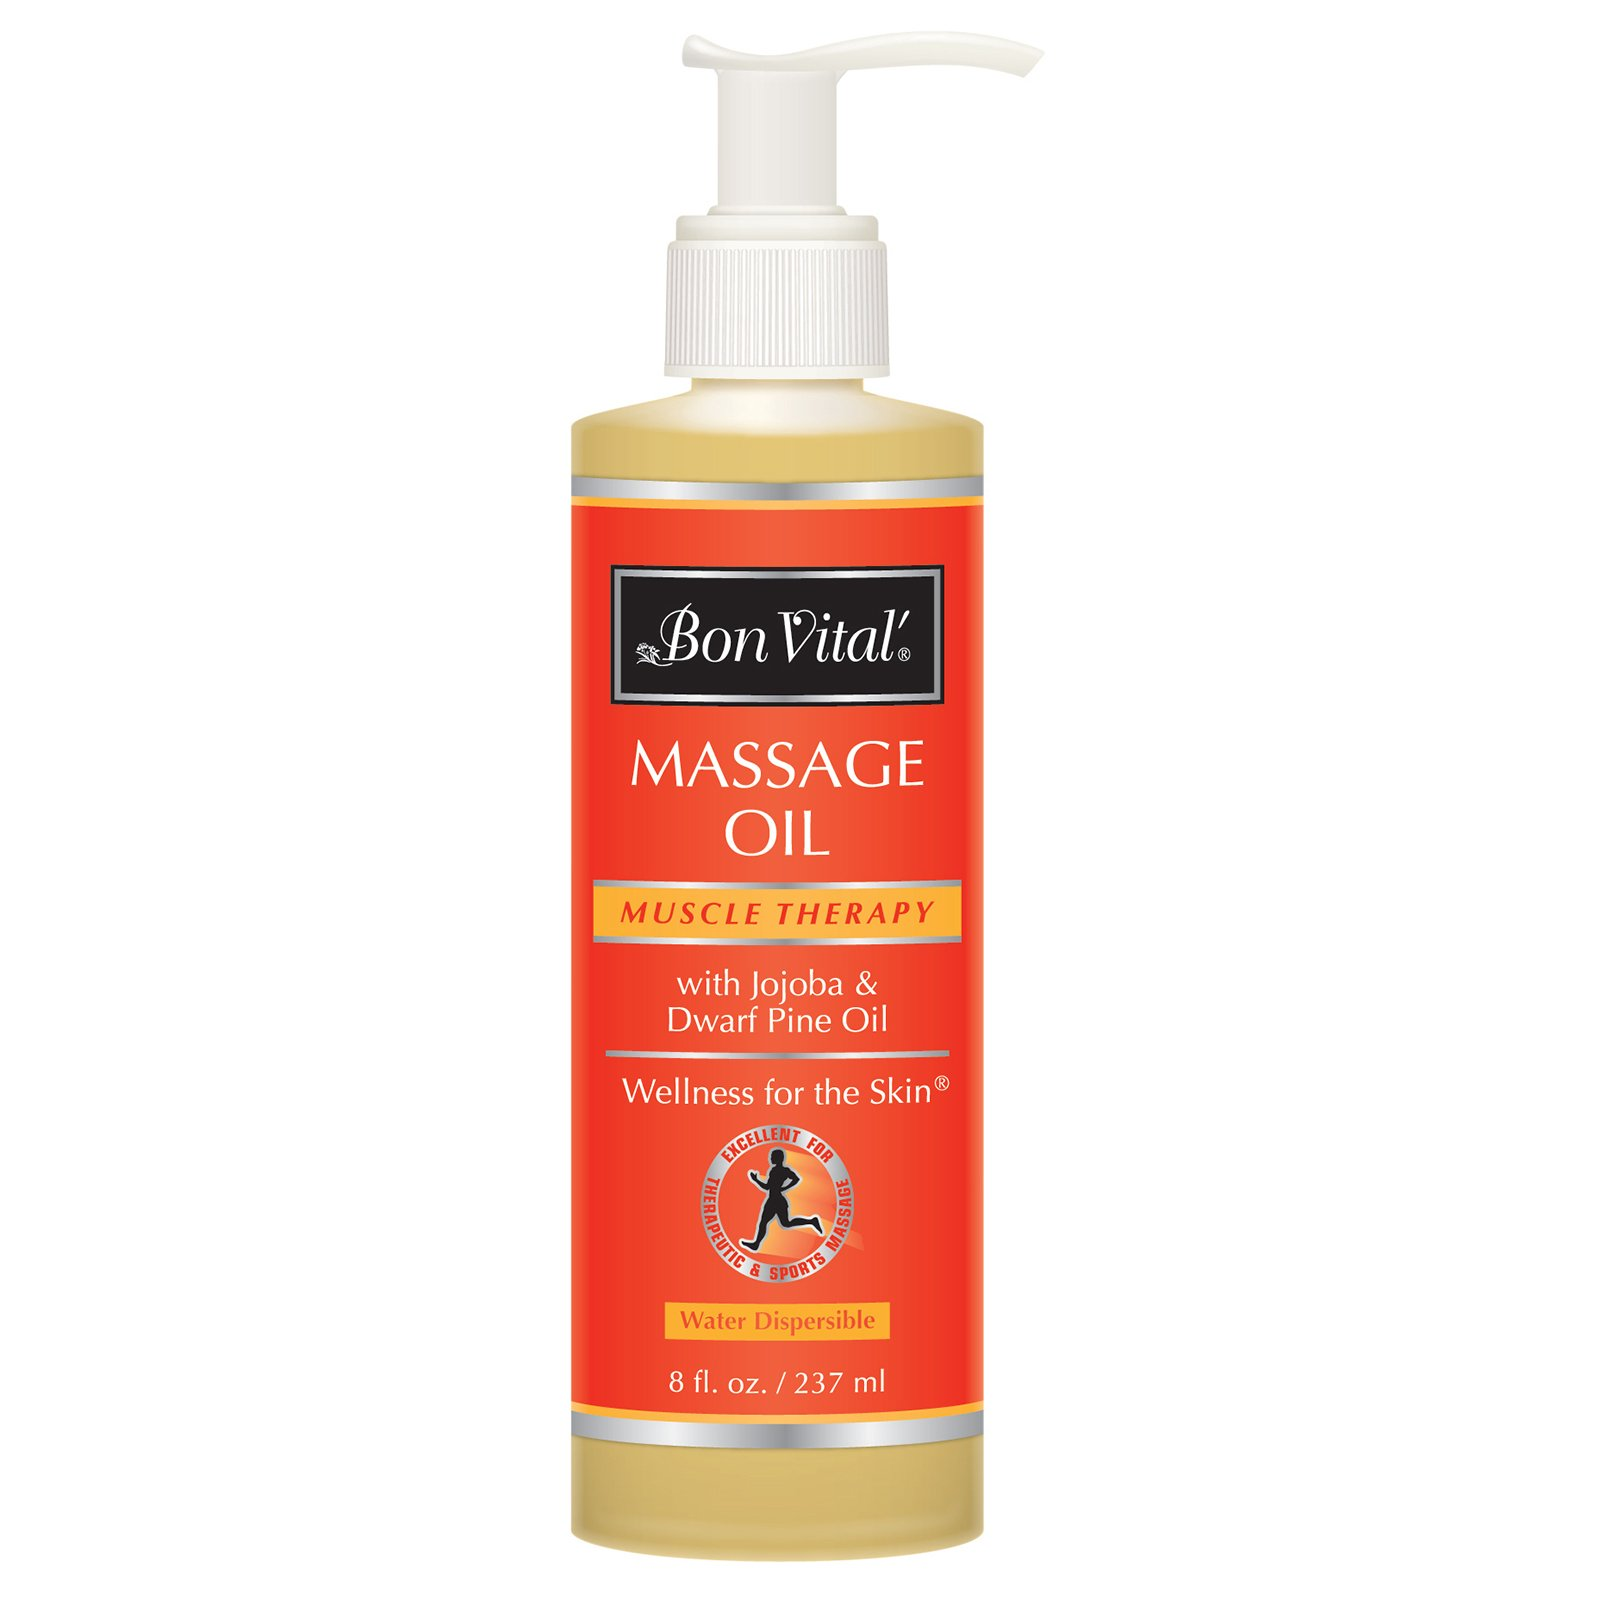 Bon Vital' Muscle Therapy Massage Oil Made with Dwarf Pine Oil & Essential Oils for a Relaxing Massage & Sore Muscle Relief, Can Be Combined with the IASTM and Graston Techniques, 8 Oz Bottle Pump